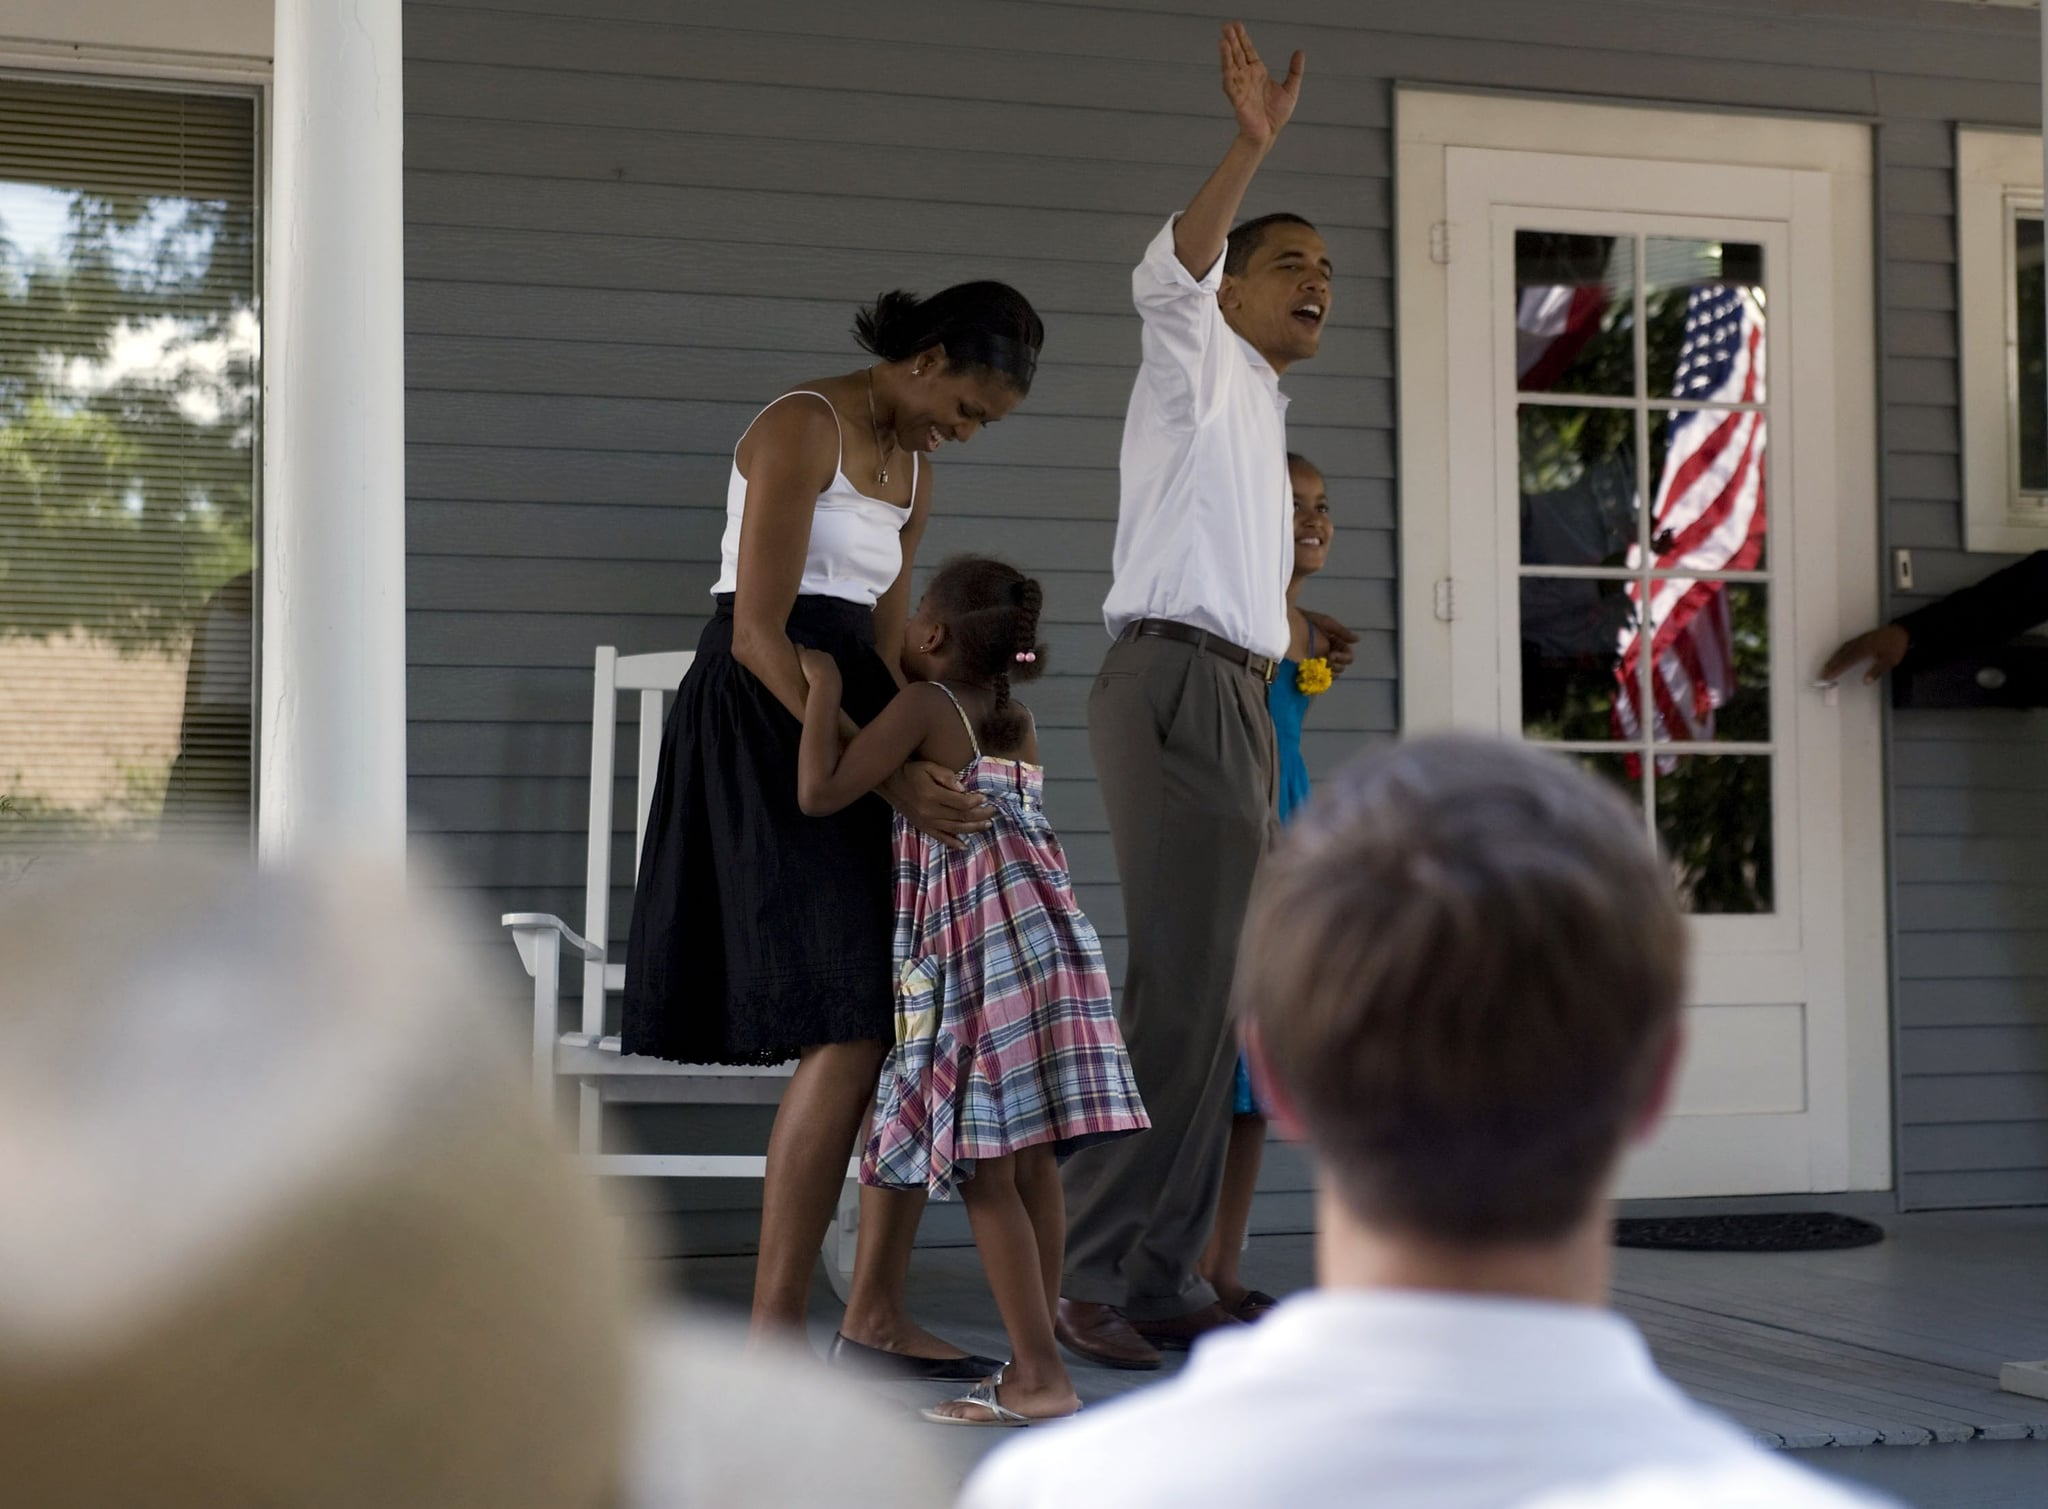 Sasha hugged Michelle during a 2007 Fourth of July campaign event.